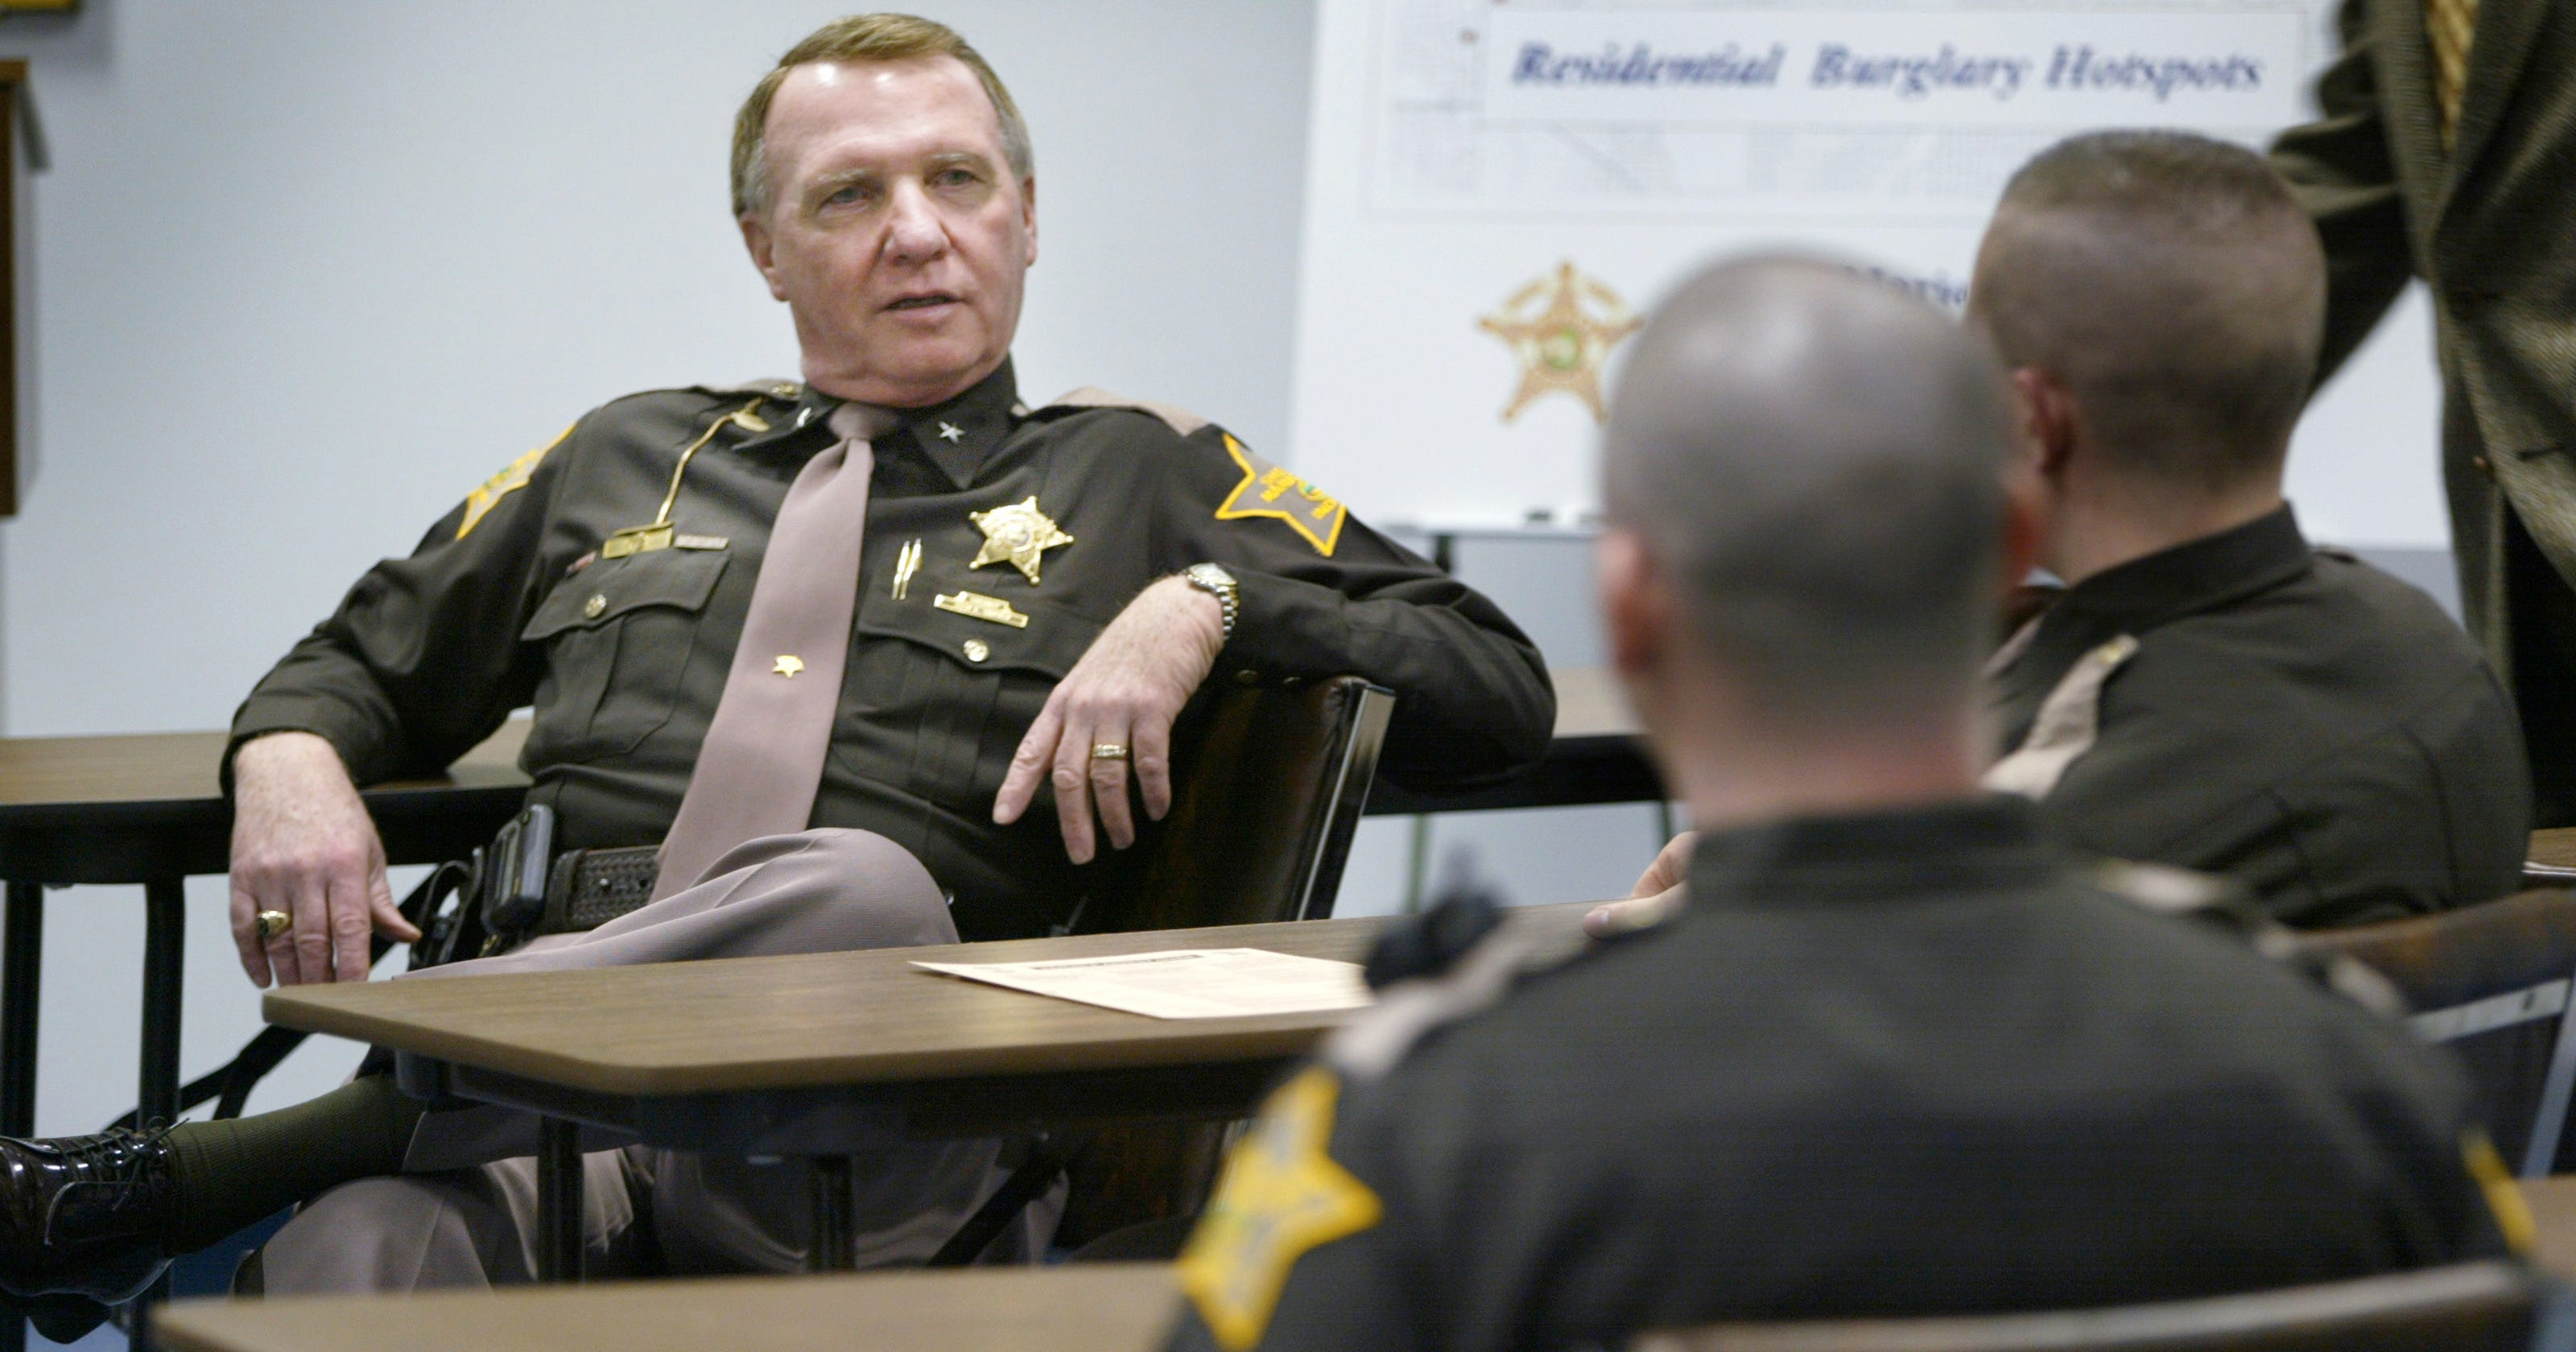 Former Marion County Sheriff Jack Cottey dies at age 75